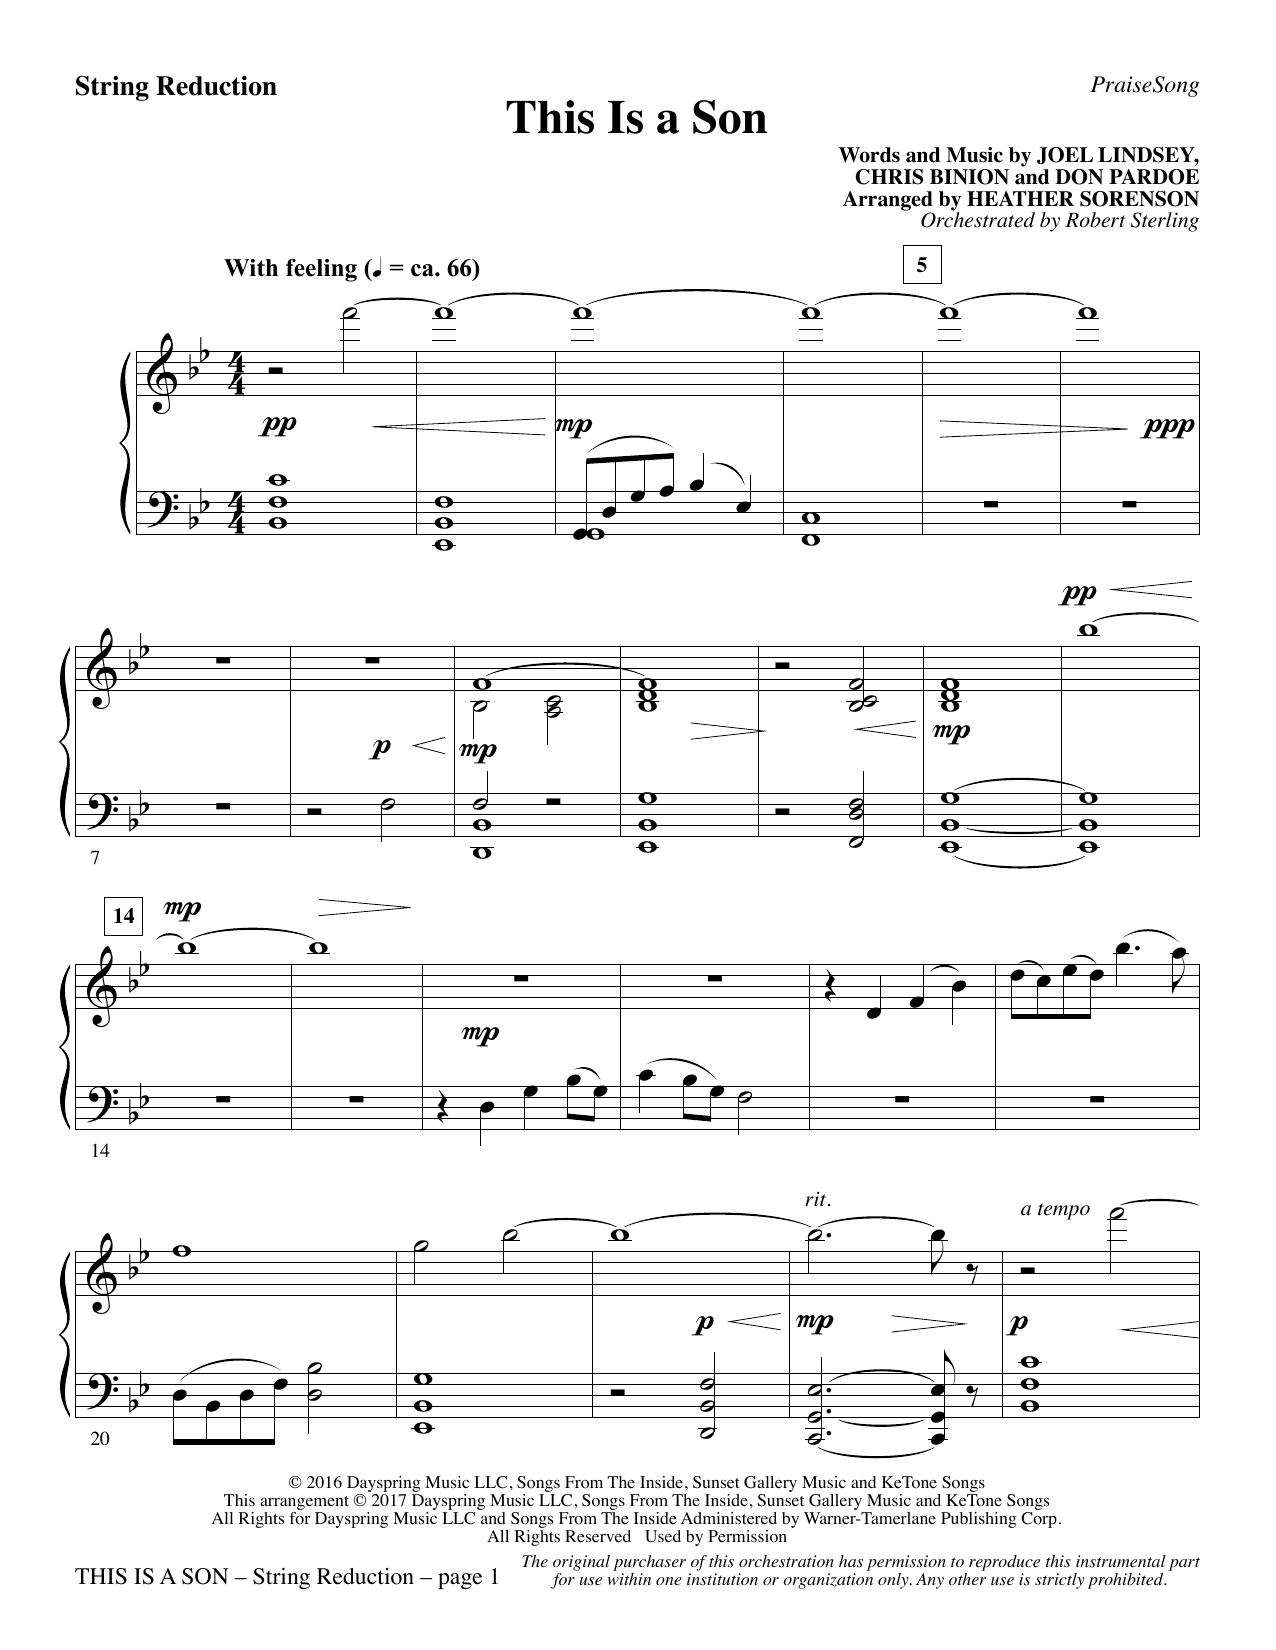 Heather Sorenson This Is a Son - Keyboard String Reduction sheet music notes and chords. Download Printable PDF.